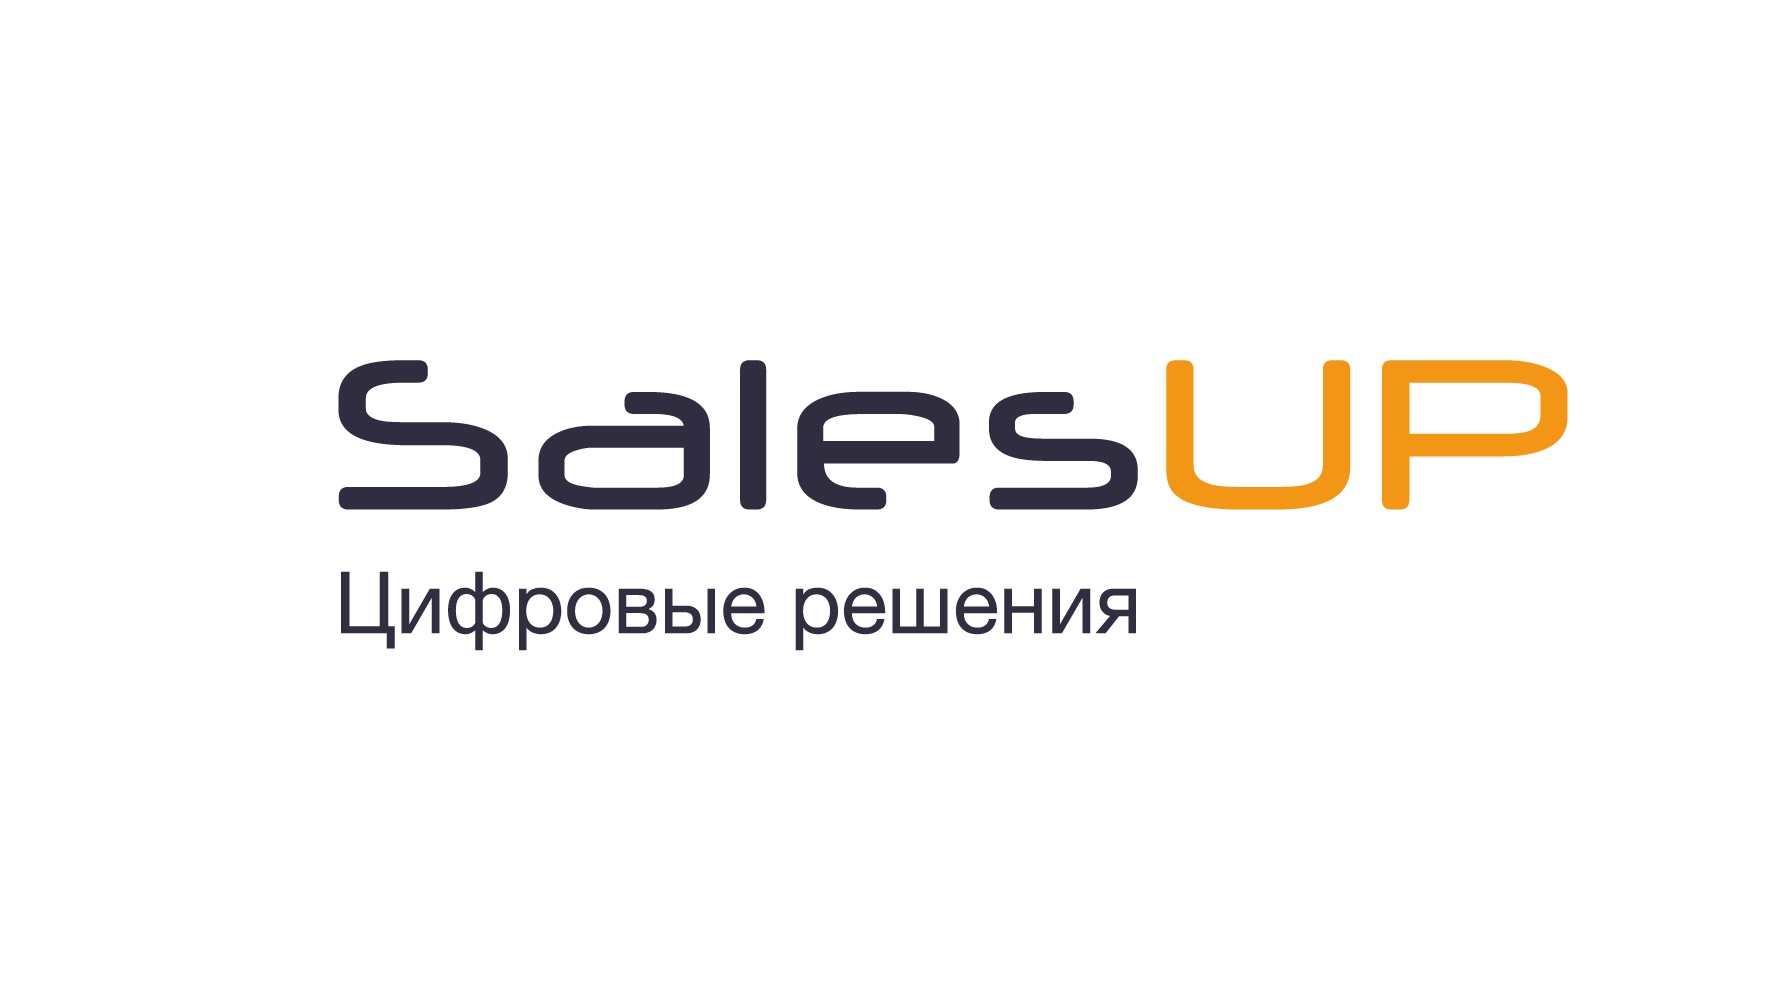 SalesUp Group